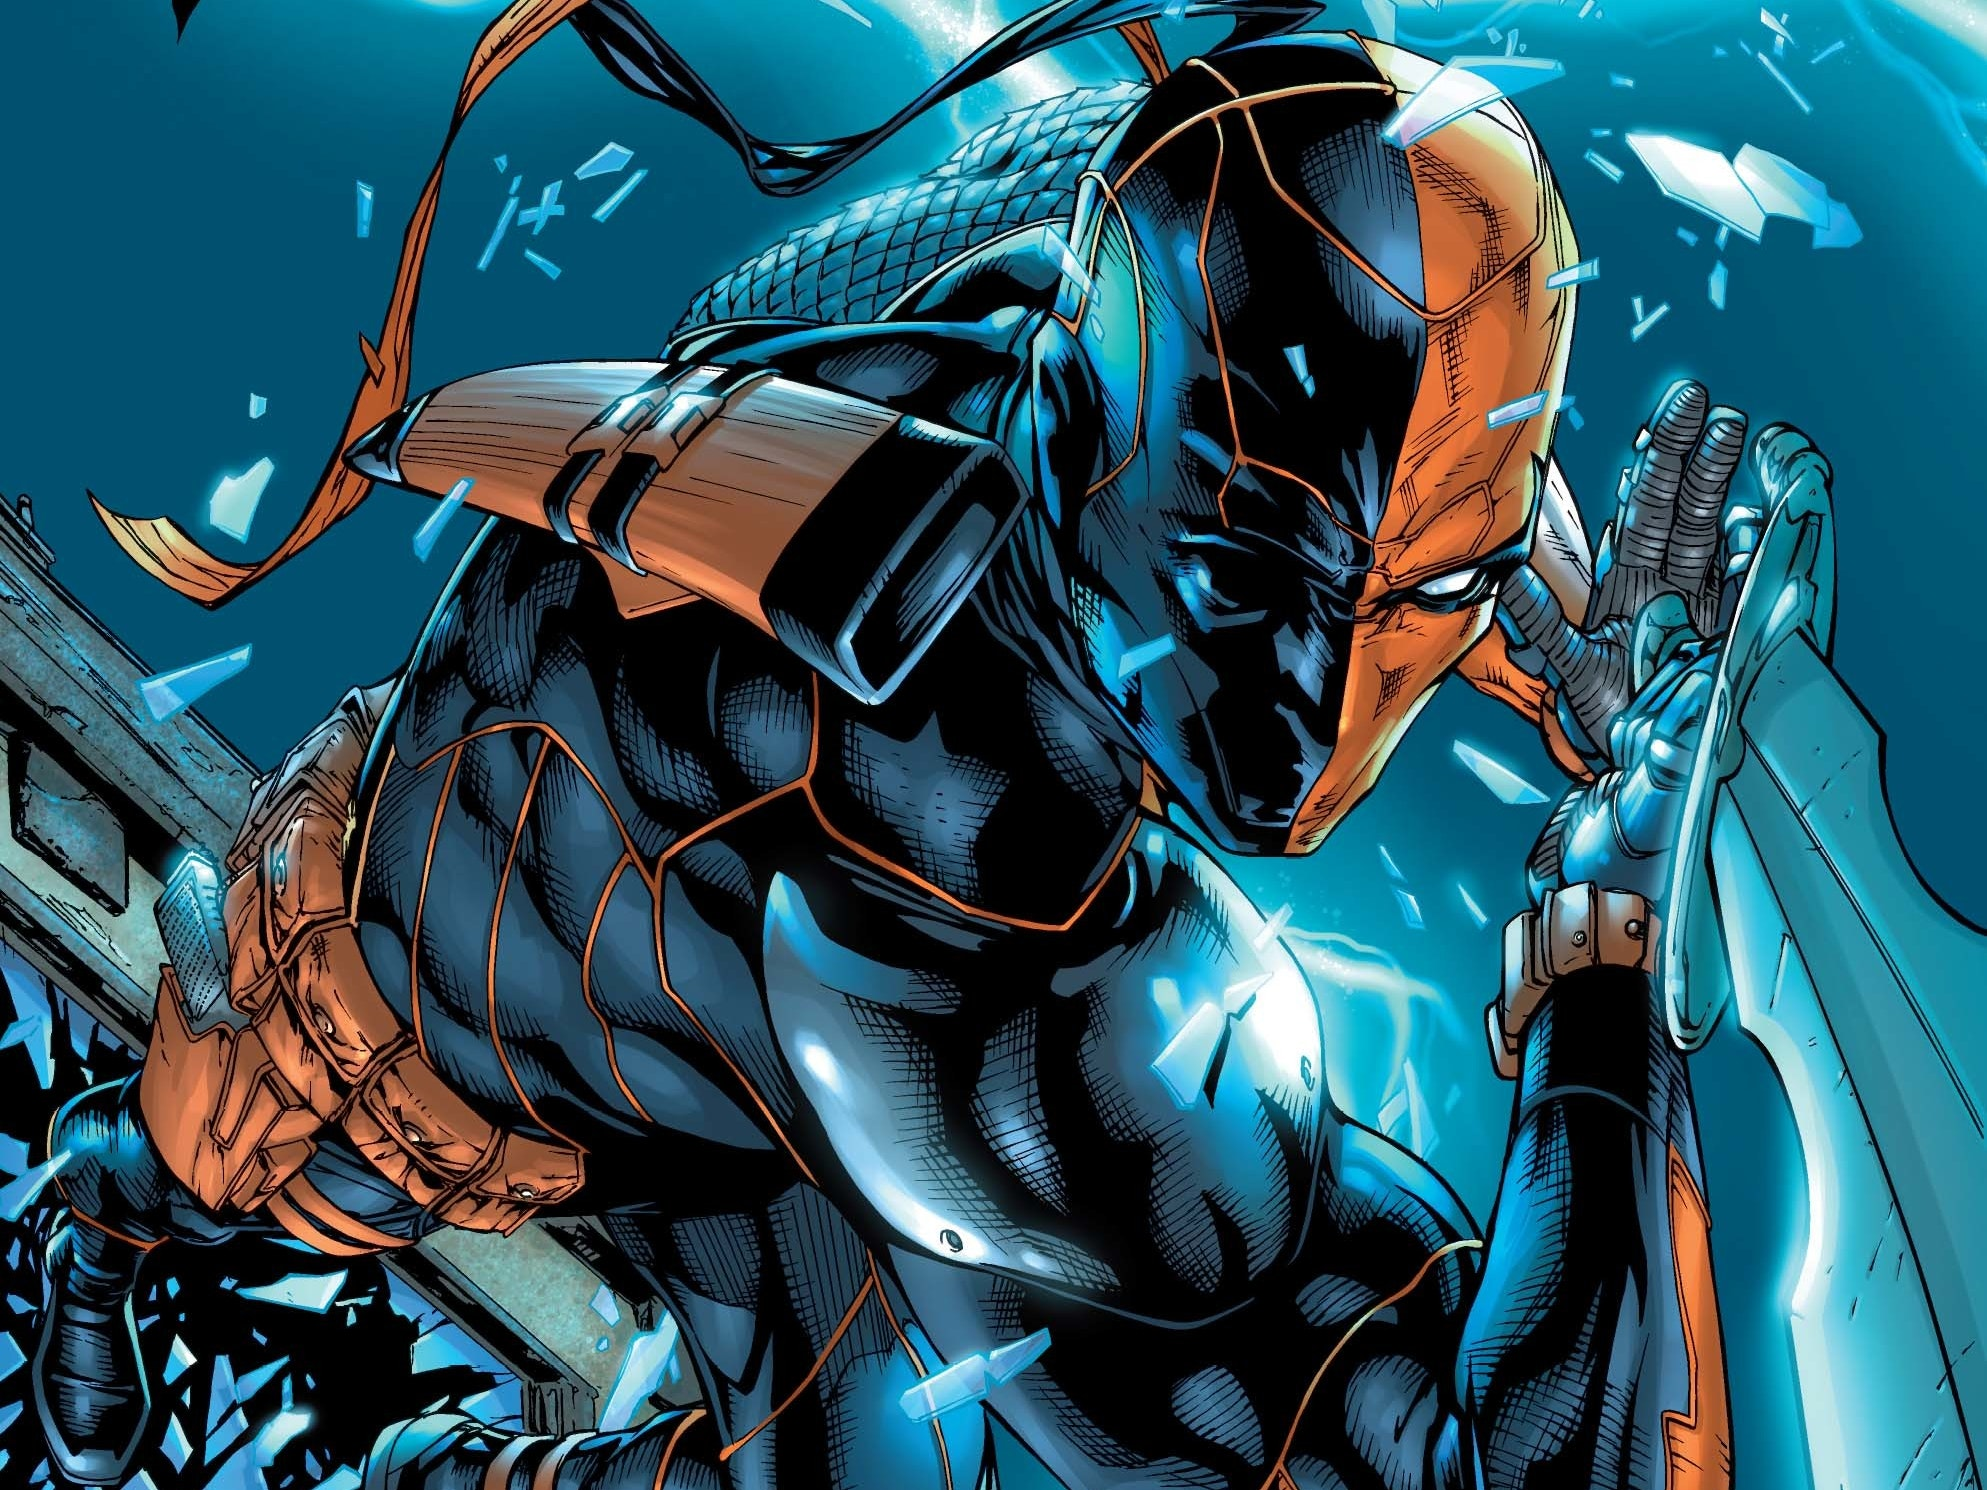 Deathstroke Wants Dark Liquor Before A Fight In Issue #2 Preview